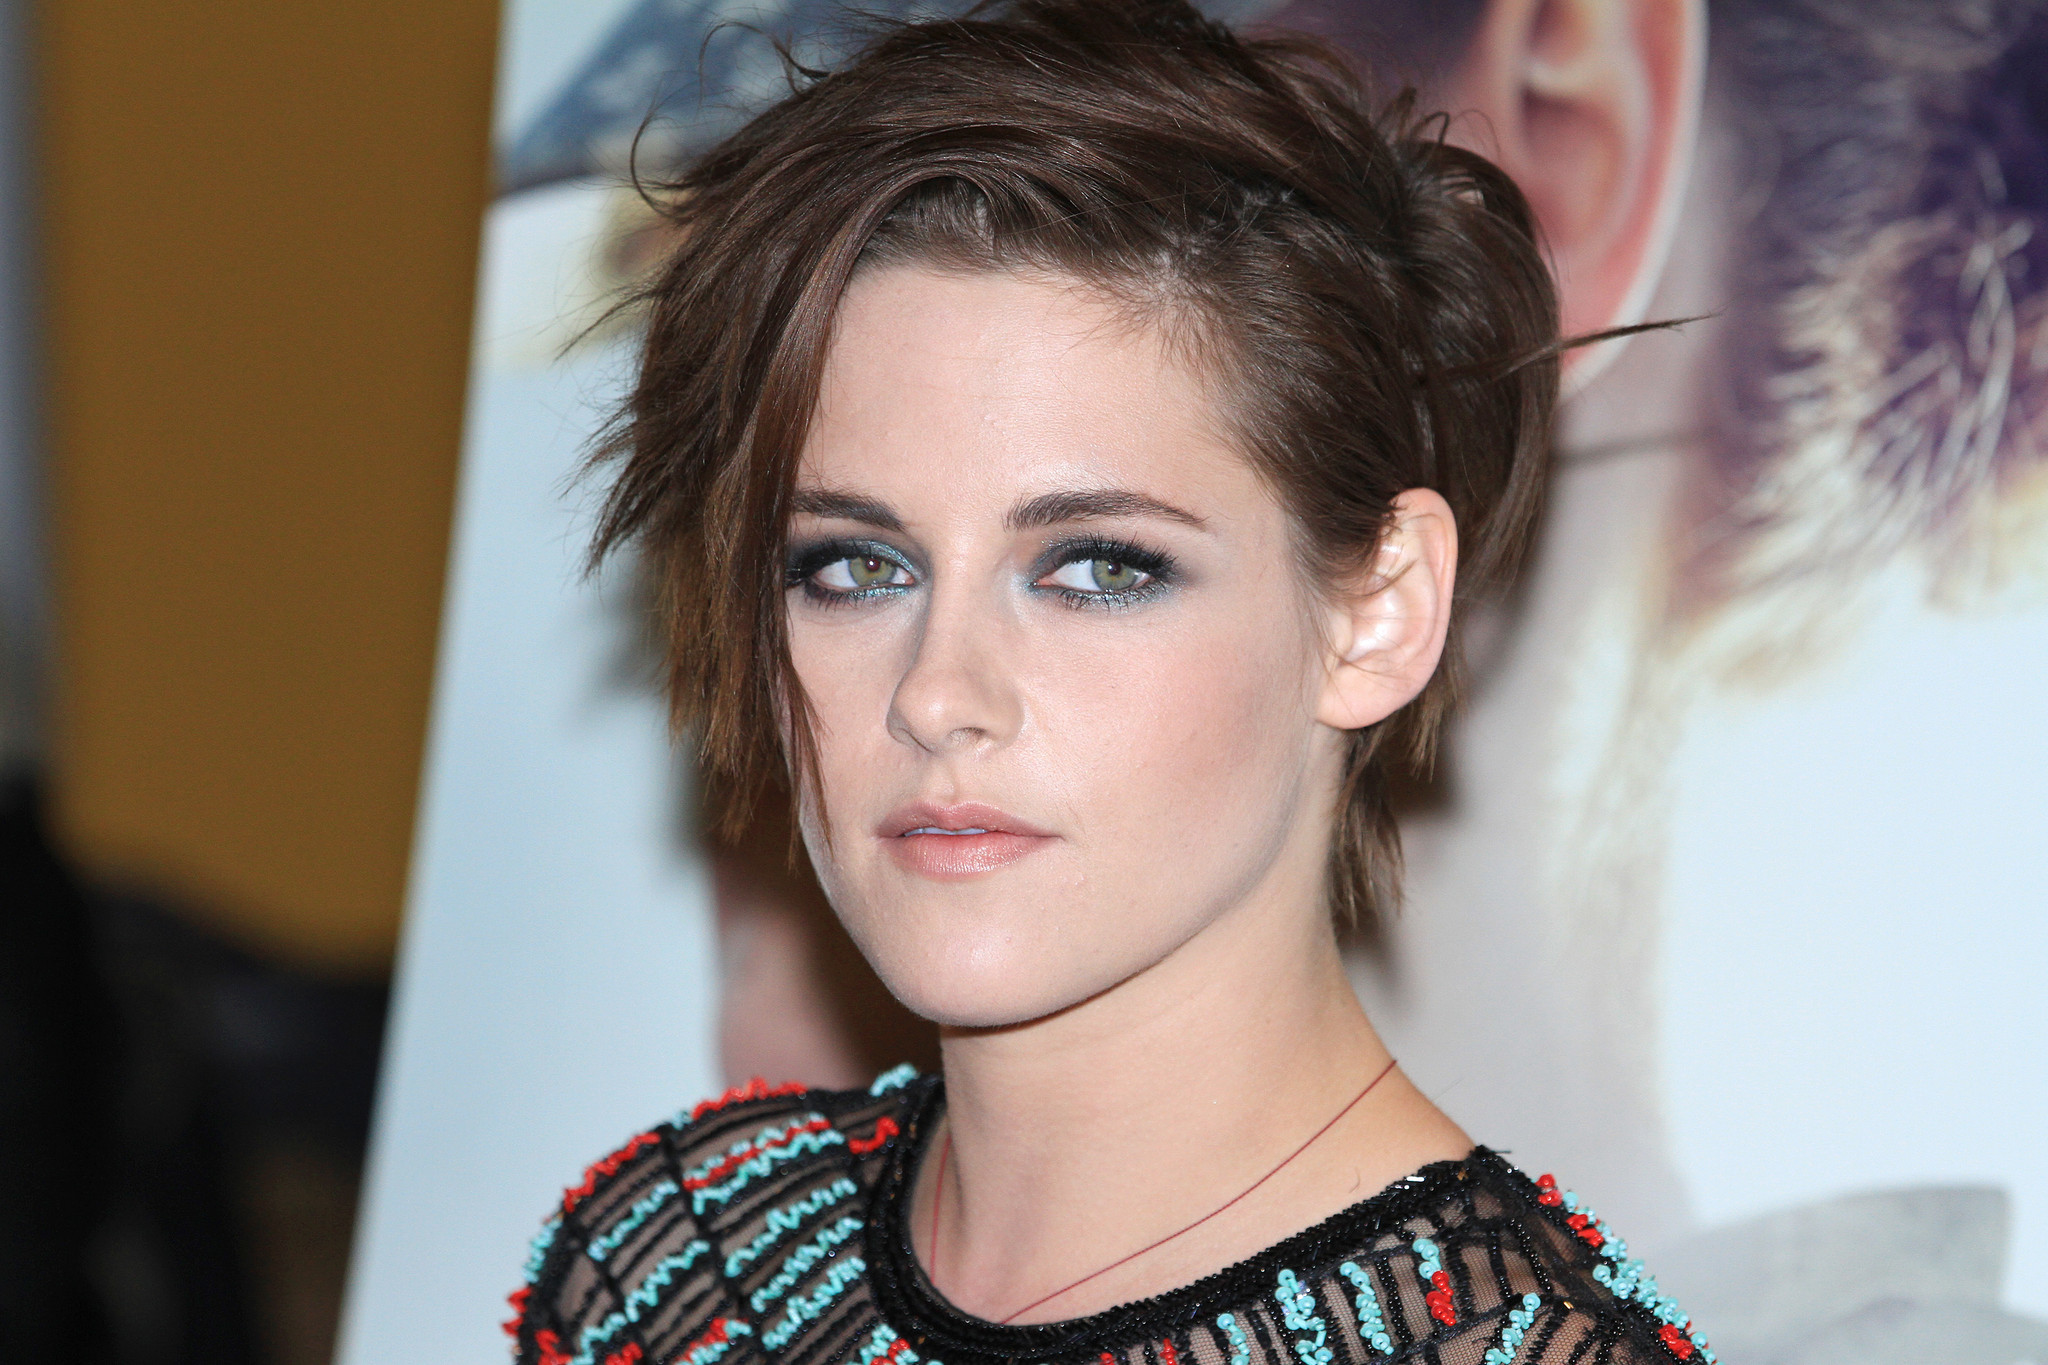 Kristen Stewart going further from 'Twilight' with prestige-film slate ... Kristen Stewart